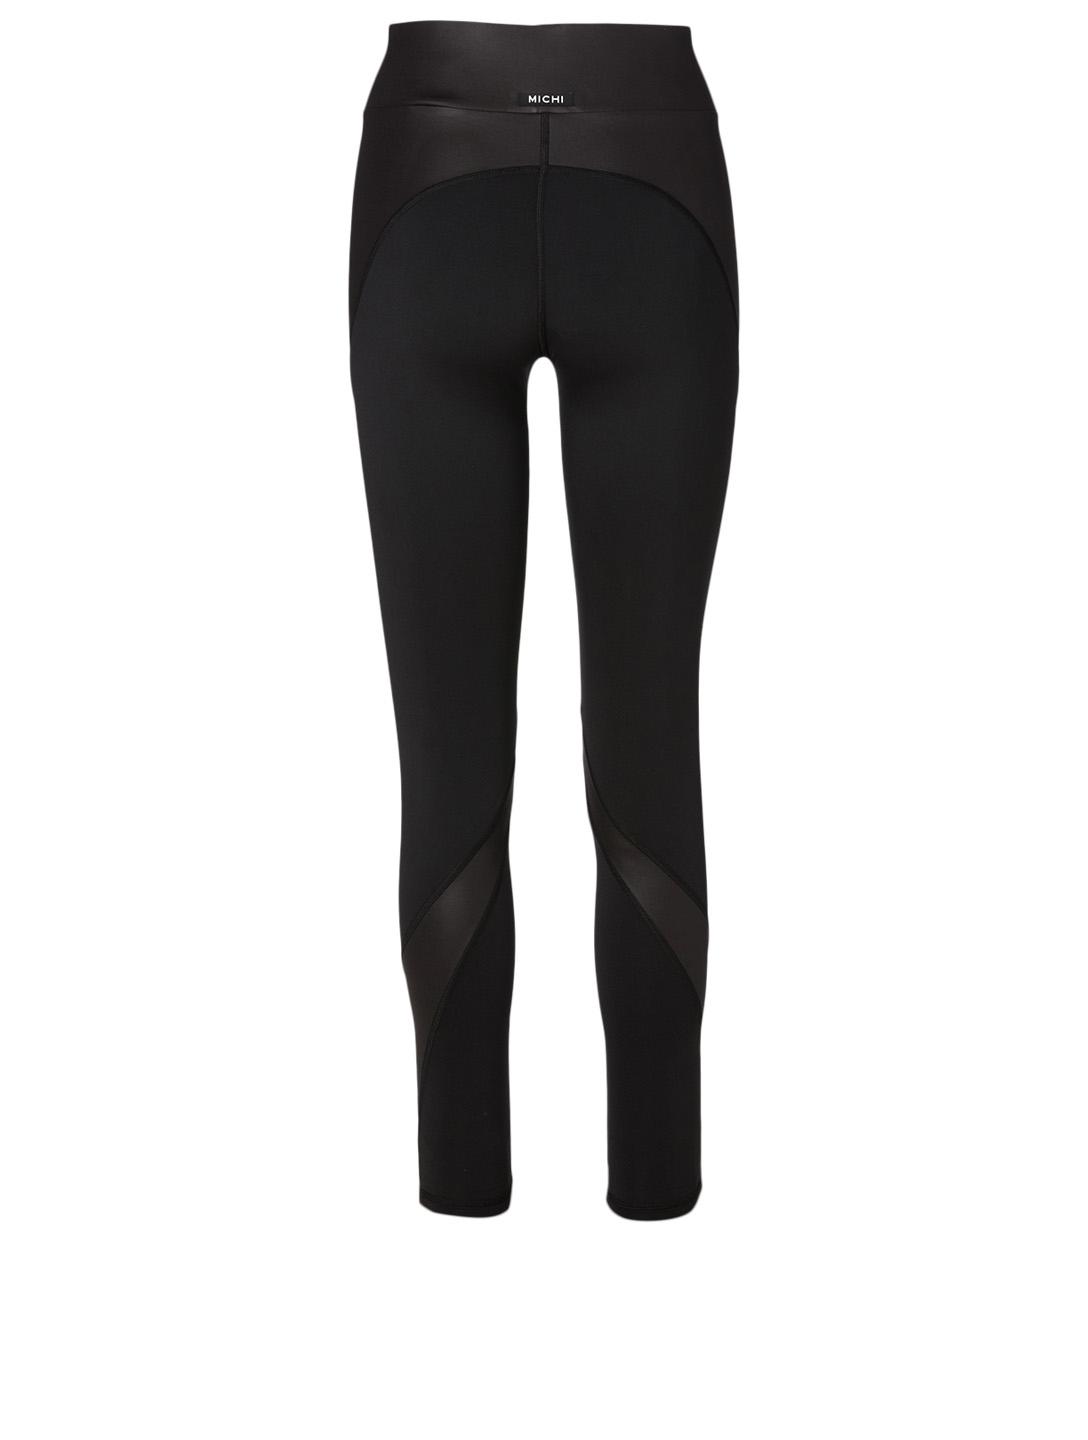 MICHI Stellar High-Waisted Leggings Women's Black